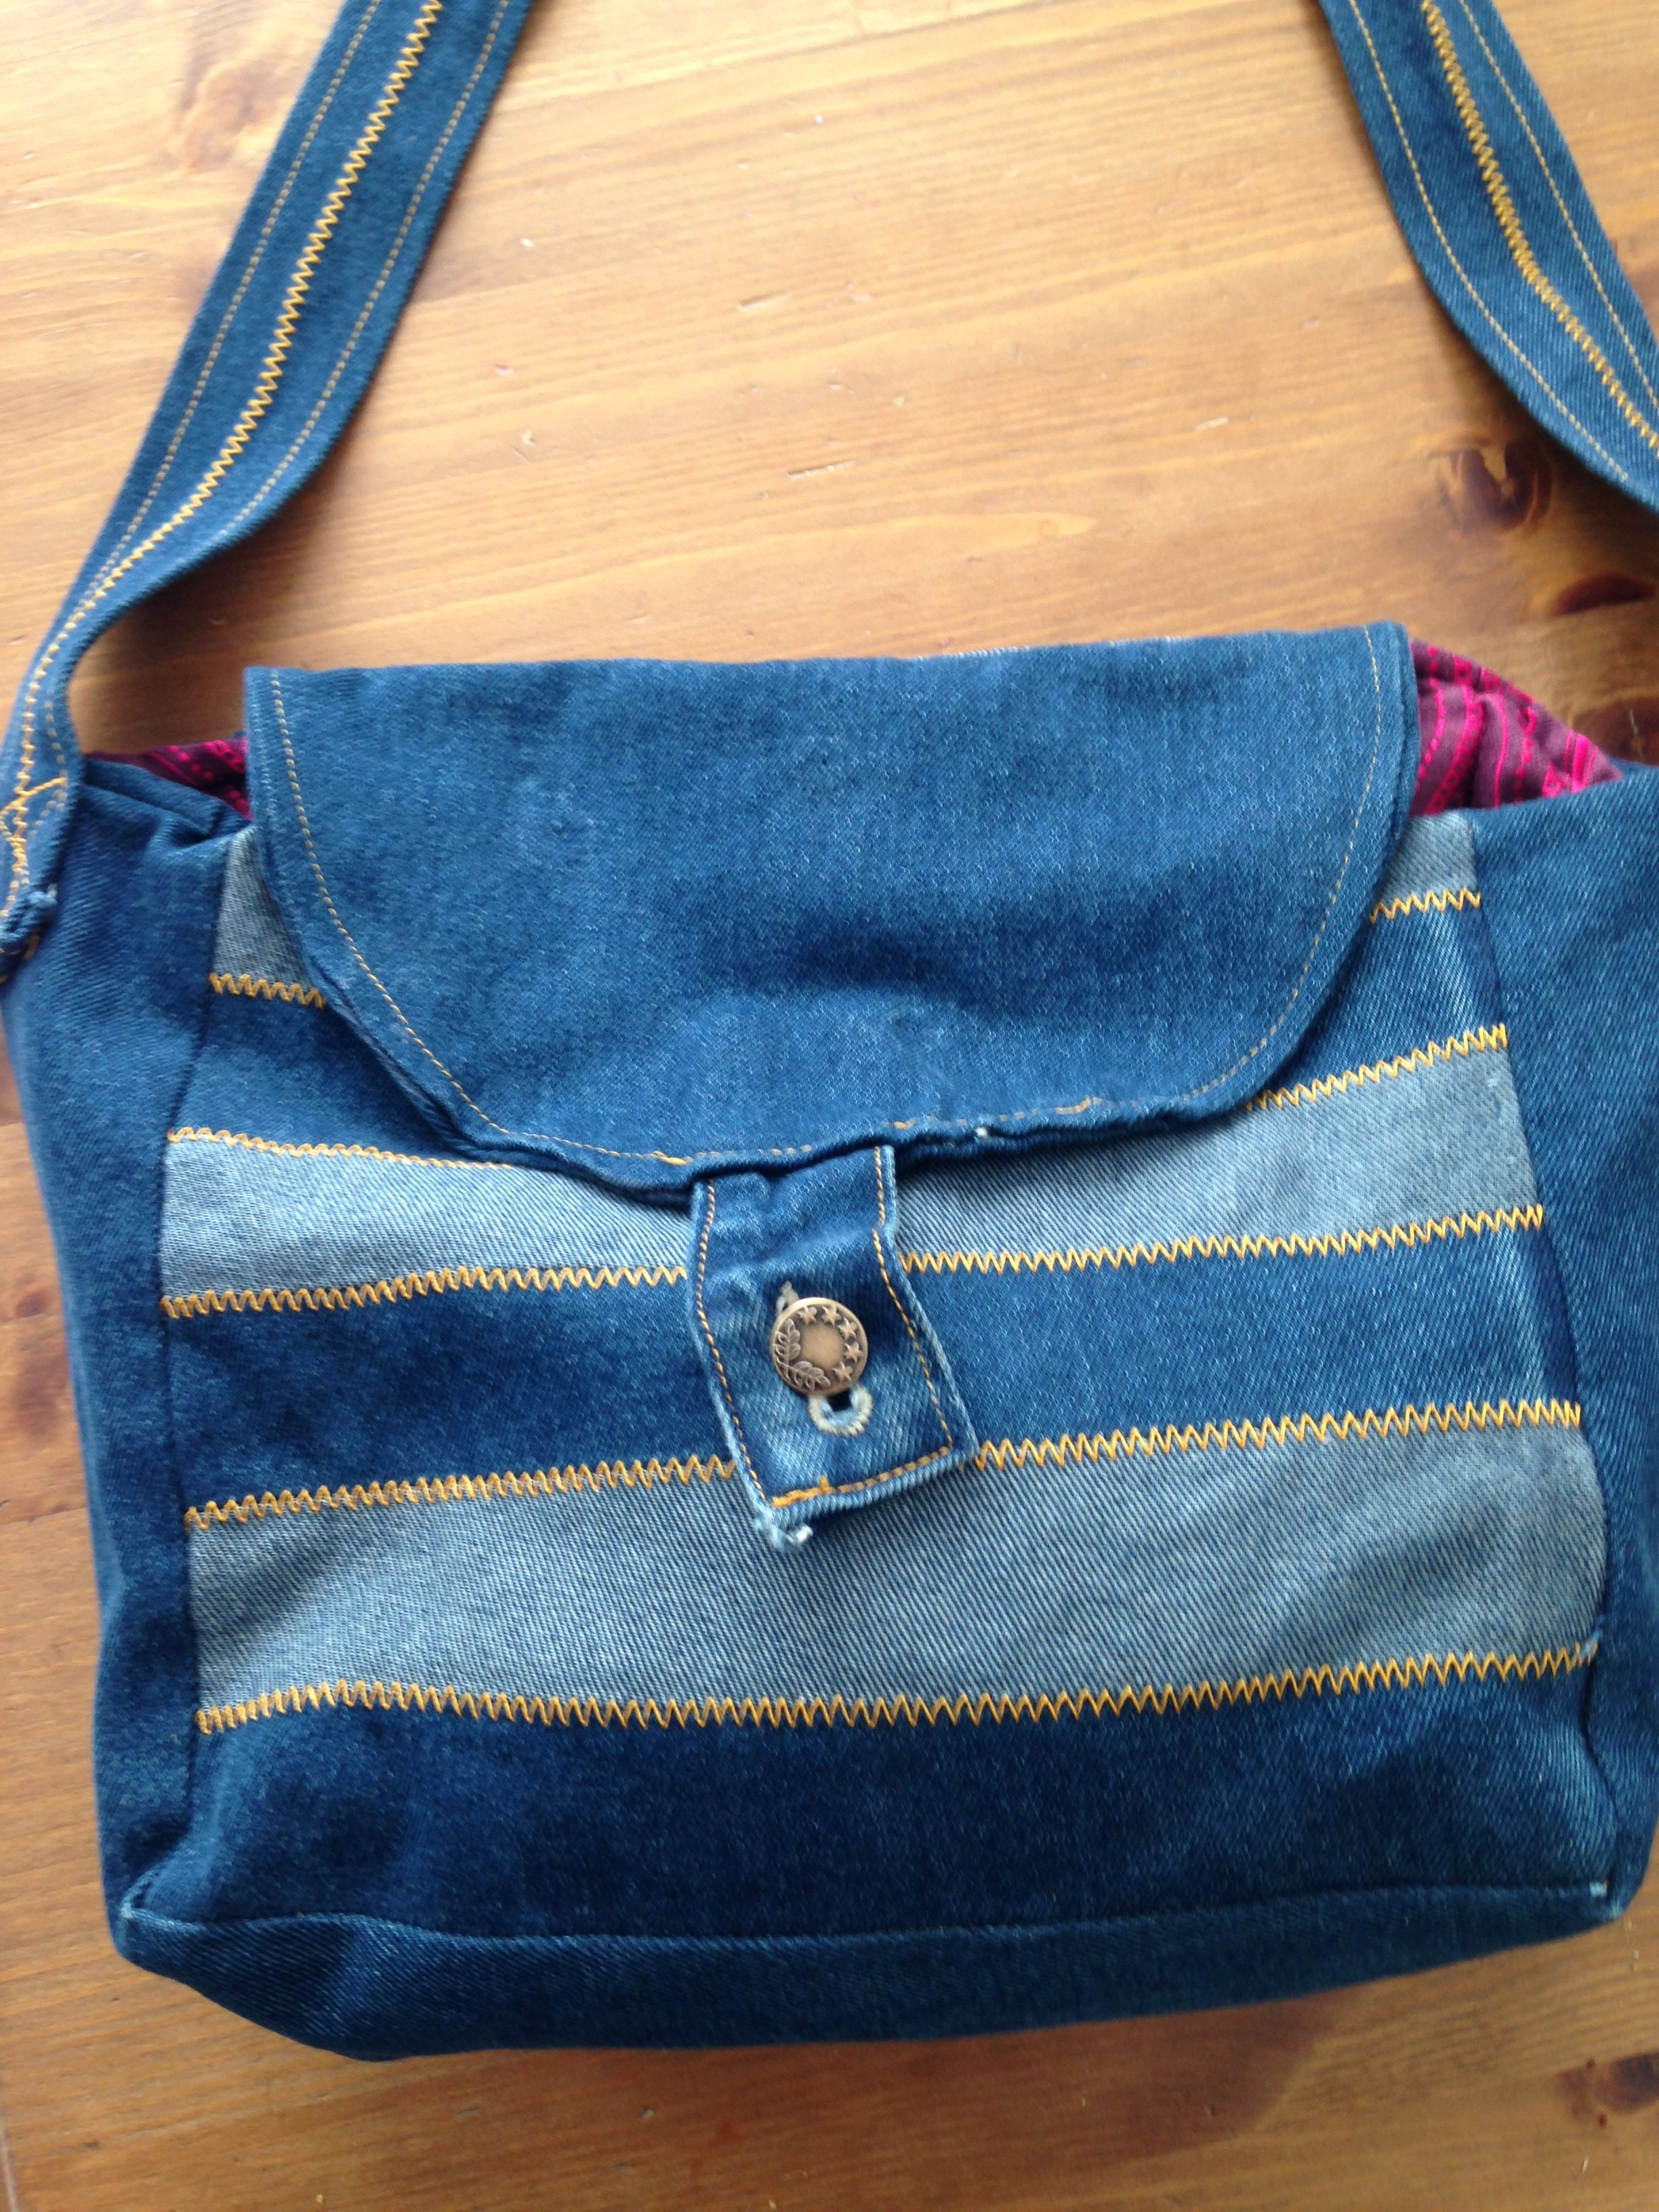 Denim fully lined large hand bag with a concealed zip pocket for valuable items